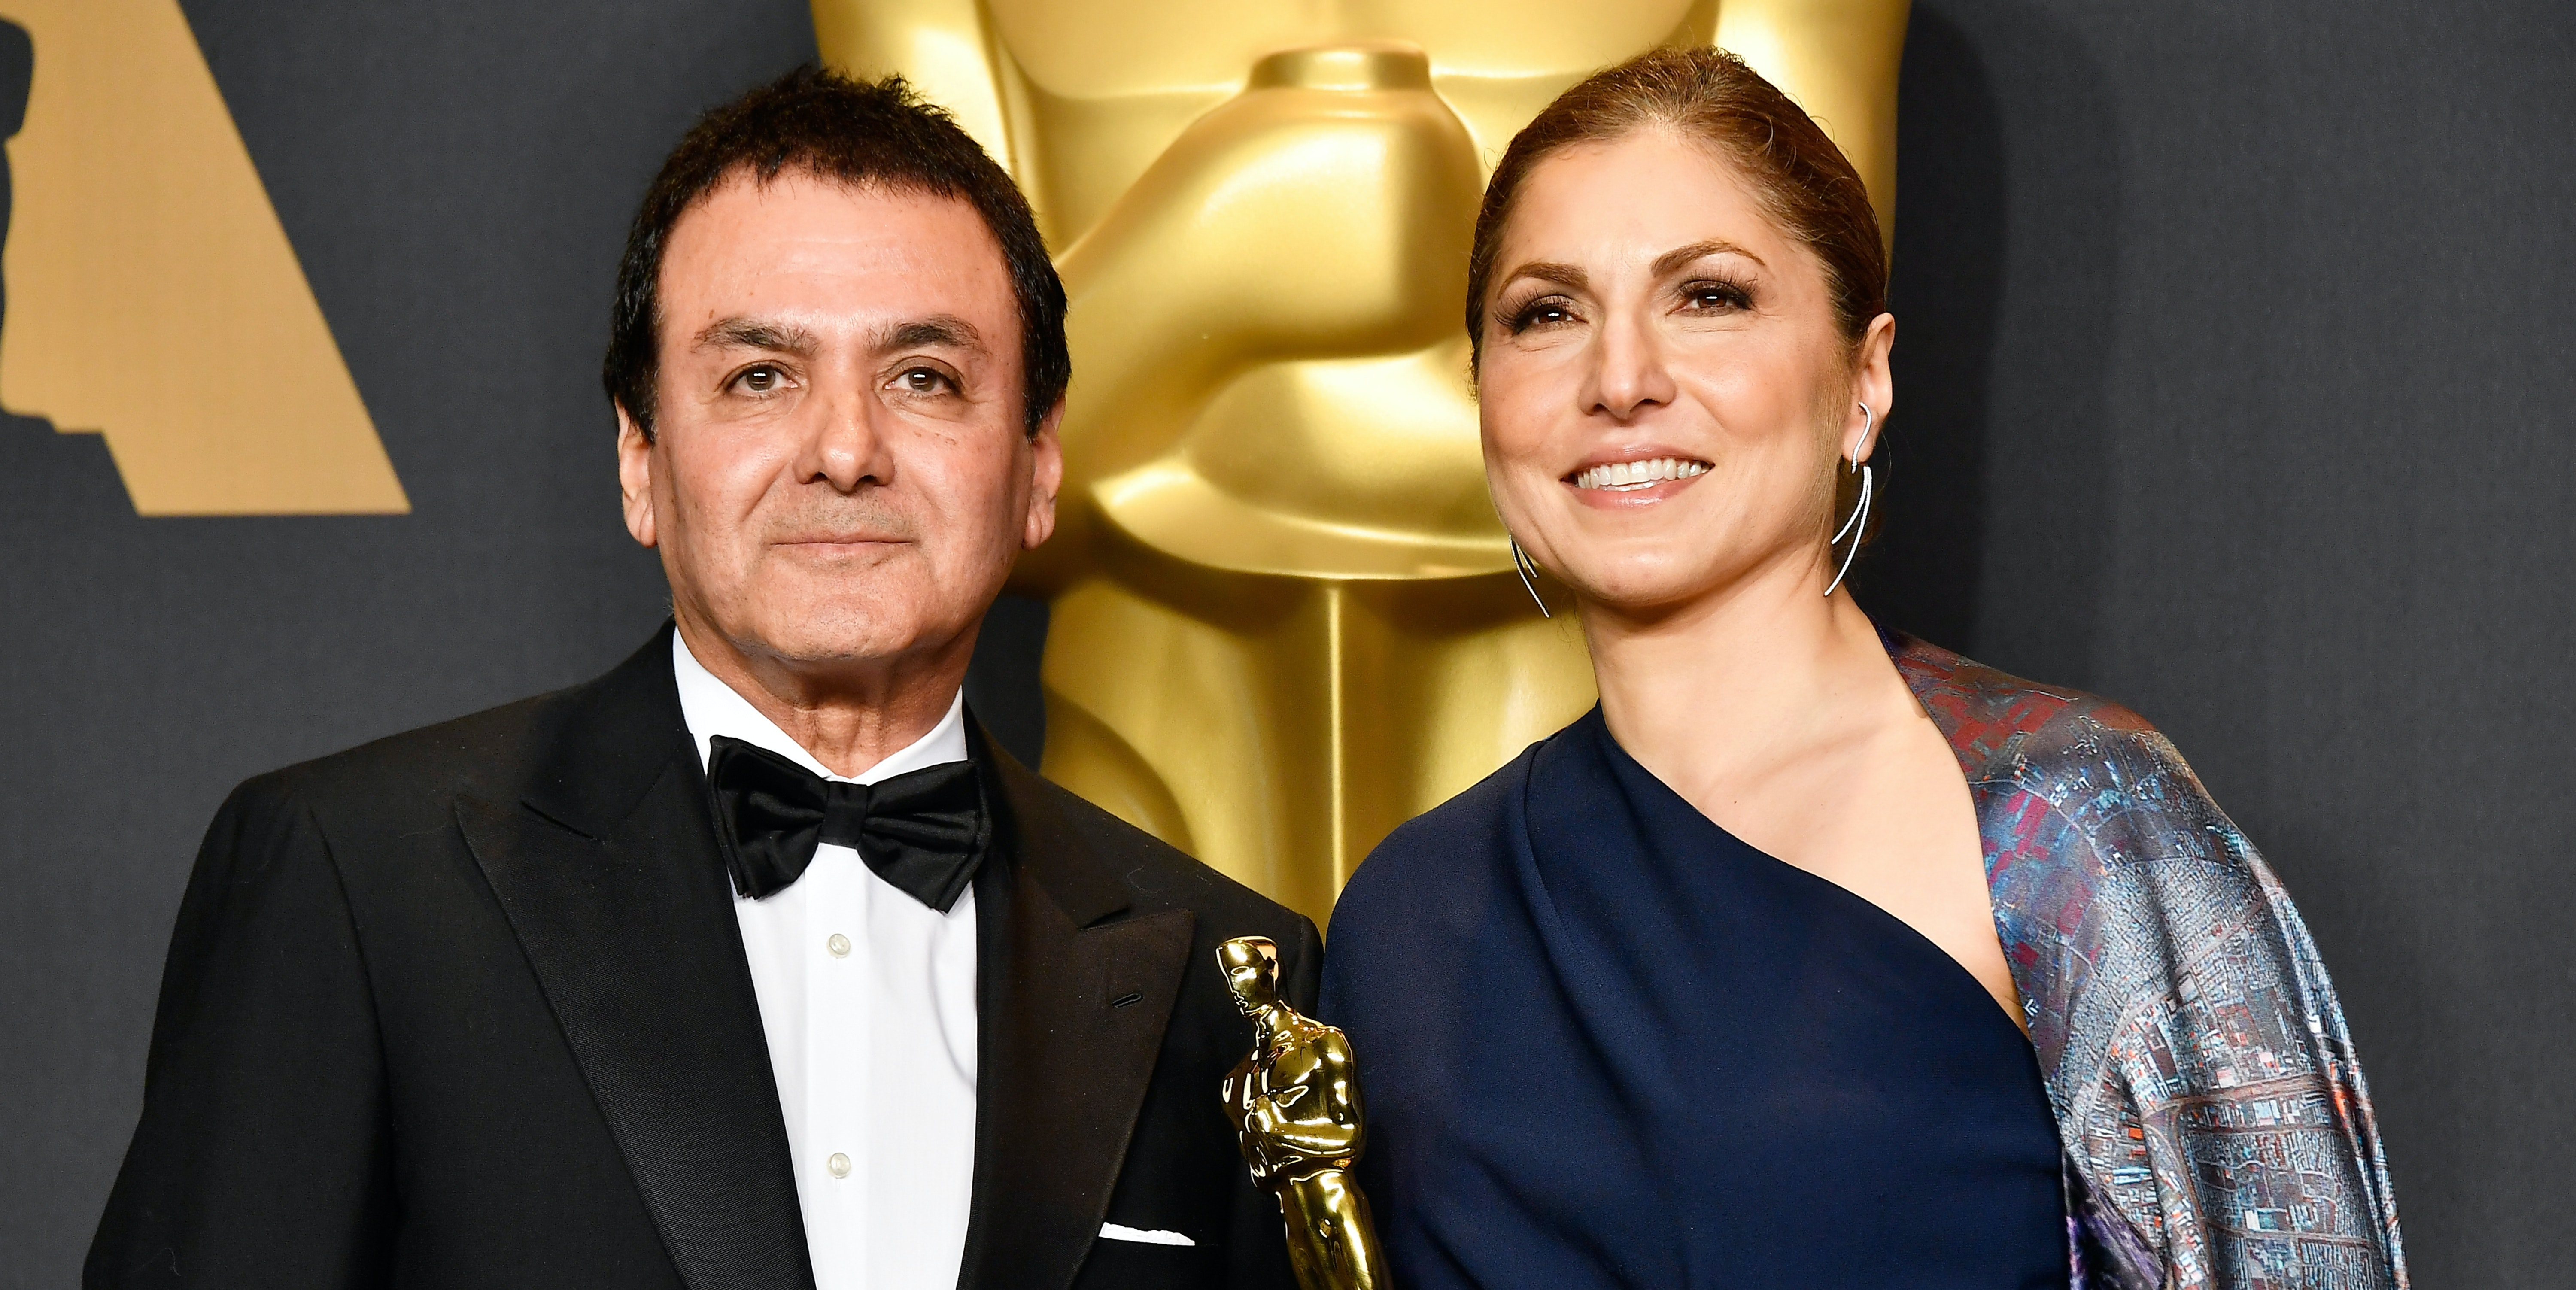 Two Iranian scientists received the Oscar on behalf of director Asghar Farhadi.